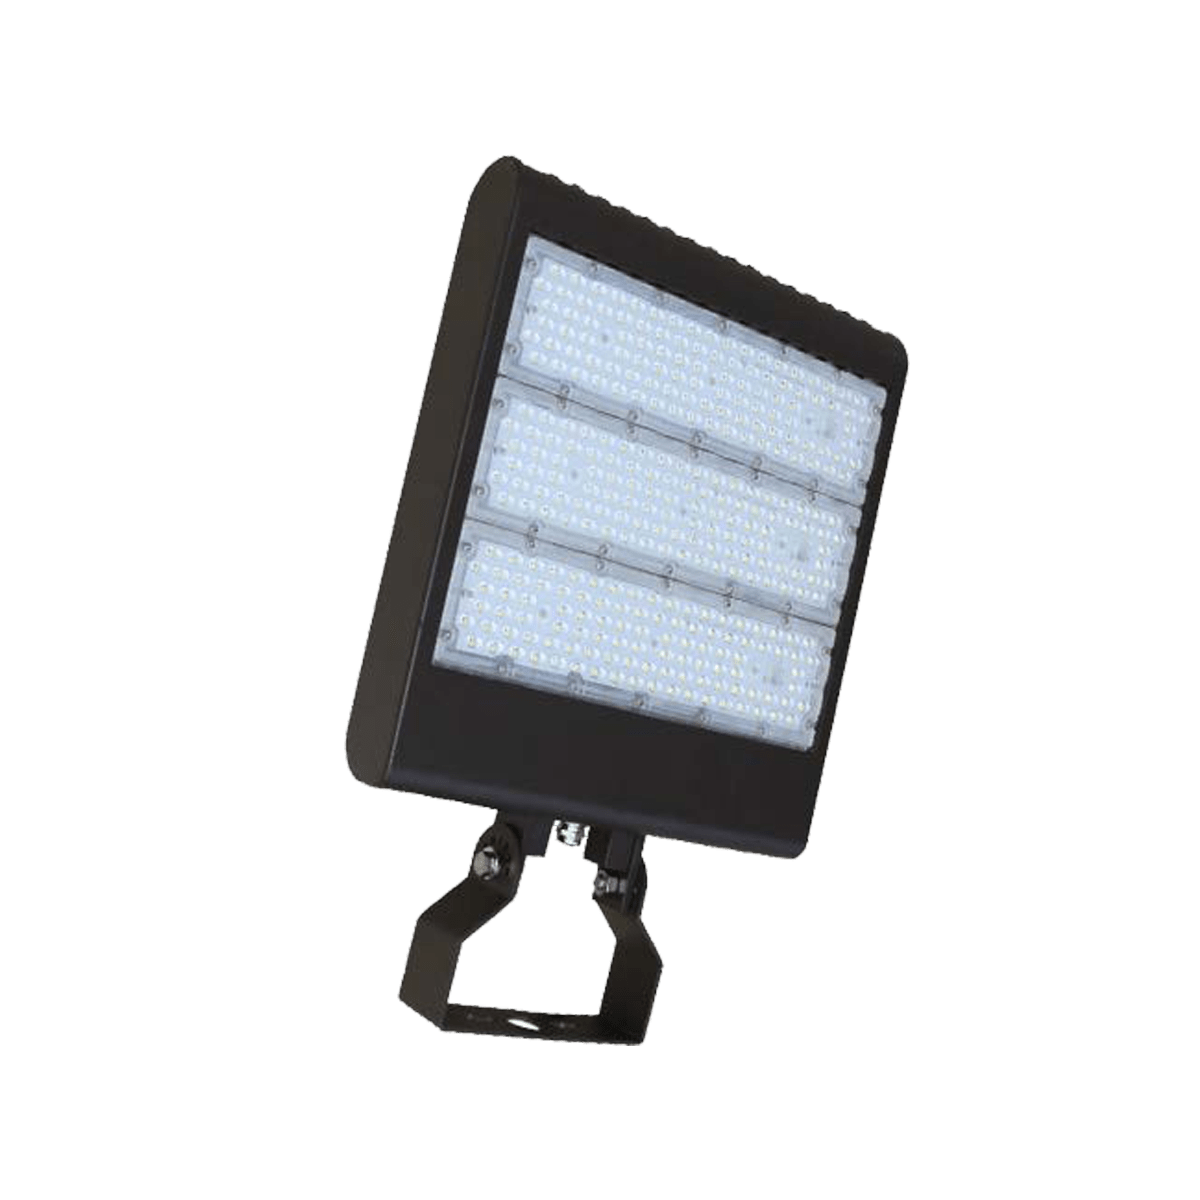 Led Flood Light Noise: FL3-Series Multi-Mount Flood Light 230W (100-277V